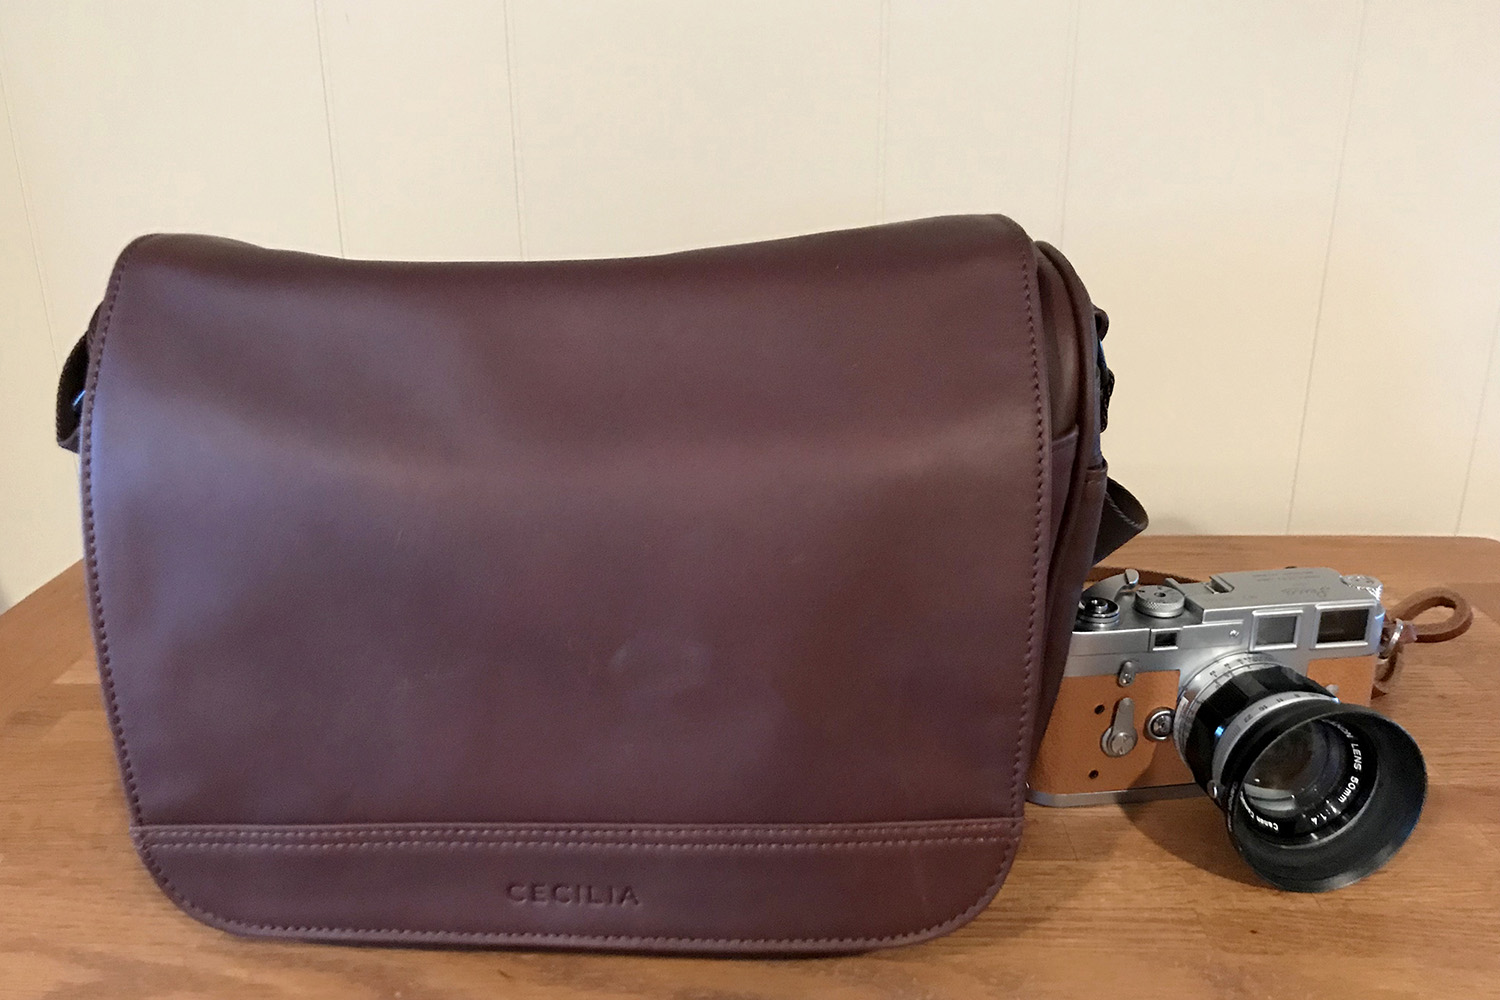 a5bd621a28d3 Cecilia Tharp 8L Leather Camera Messenger Bag Review – By Nic Coury